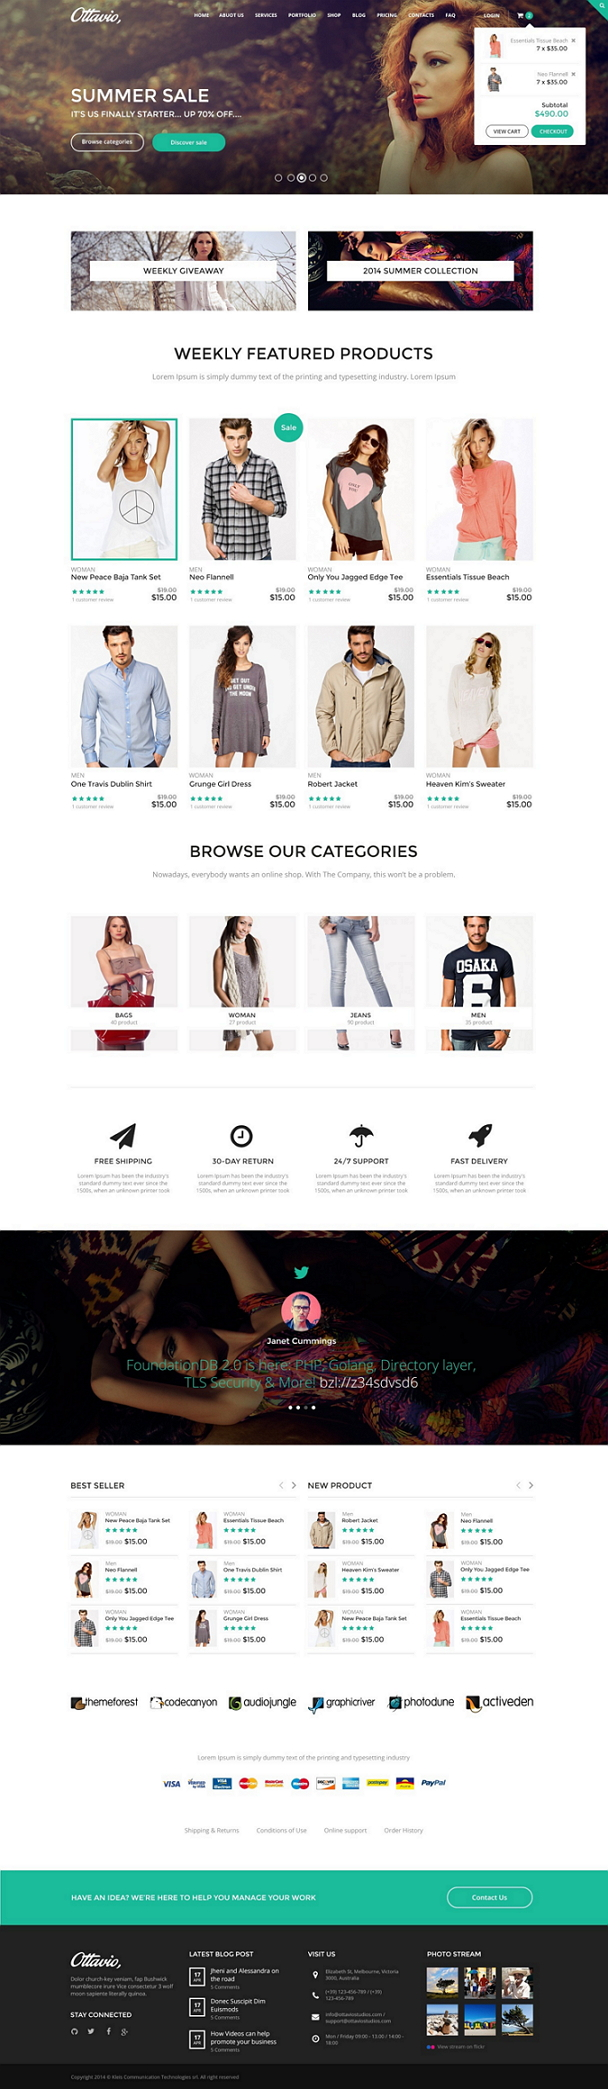 Ottavio is a creative multipurpose PSD template with 30 fully layered PSD file fully customizabl ...